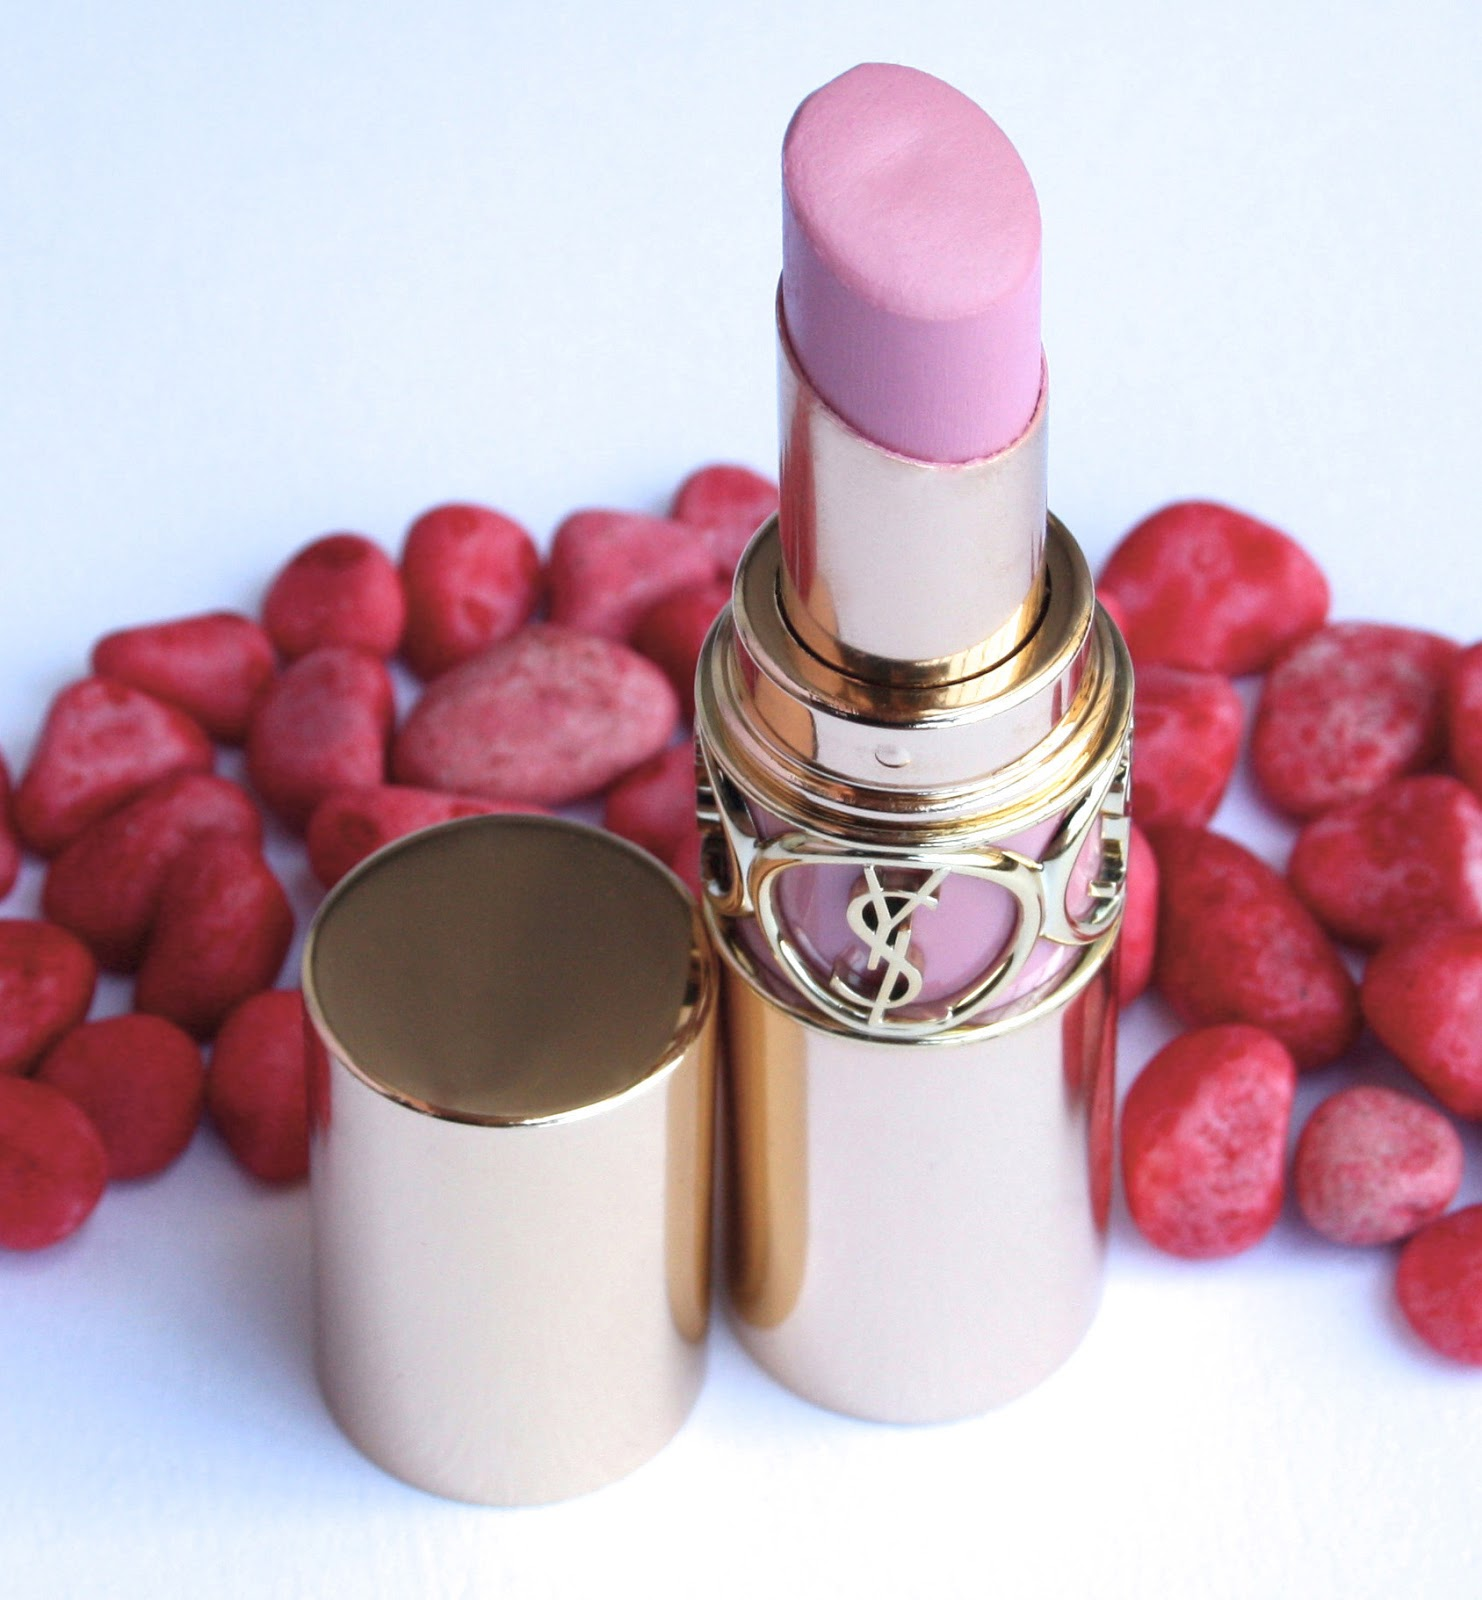 YSL Rouge Volupte Lipstick in Lingerie Pink (7) Review ...